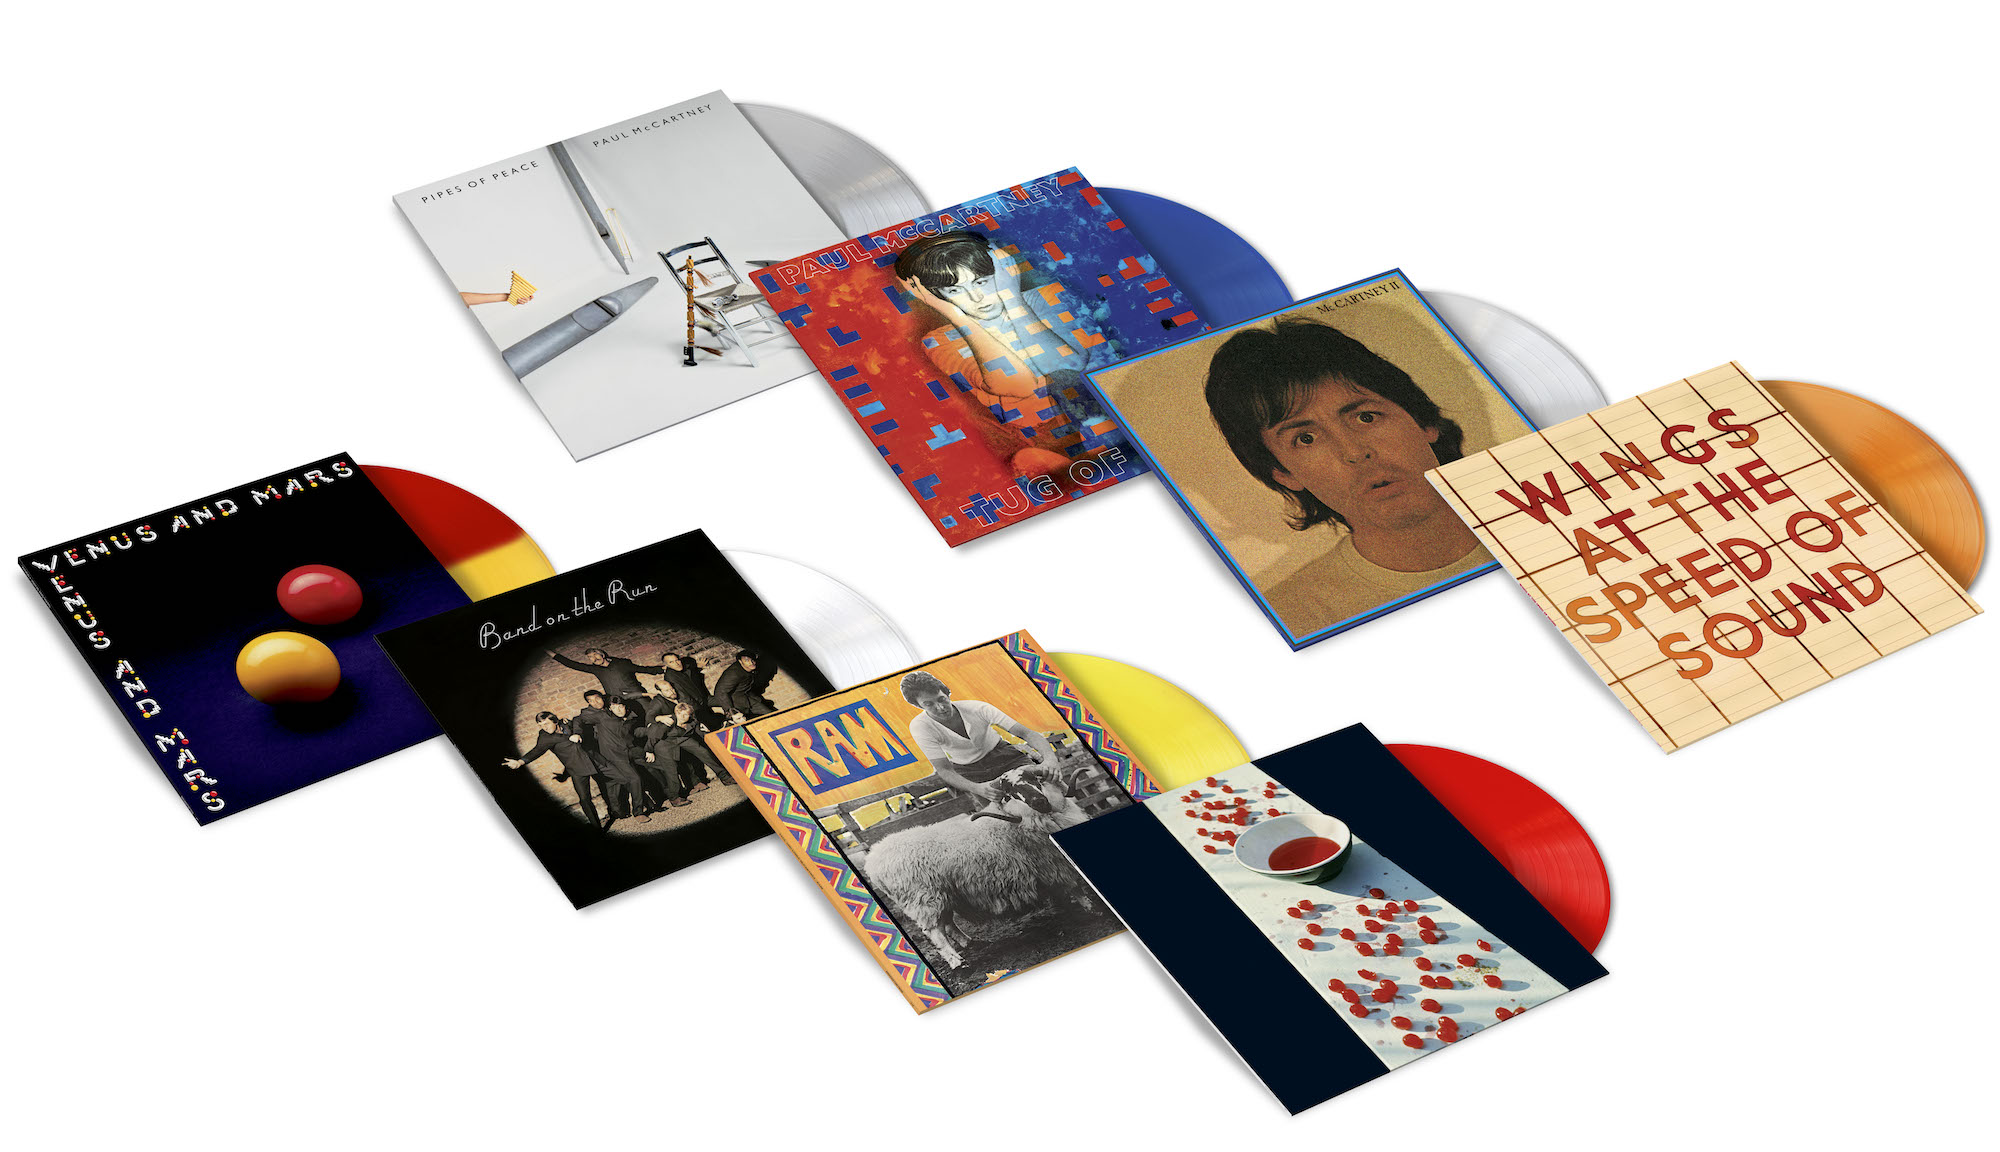 Paul McCartney Archive Collection / Limited edition 180g coloured vinyl pressings